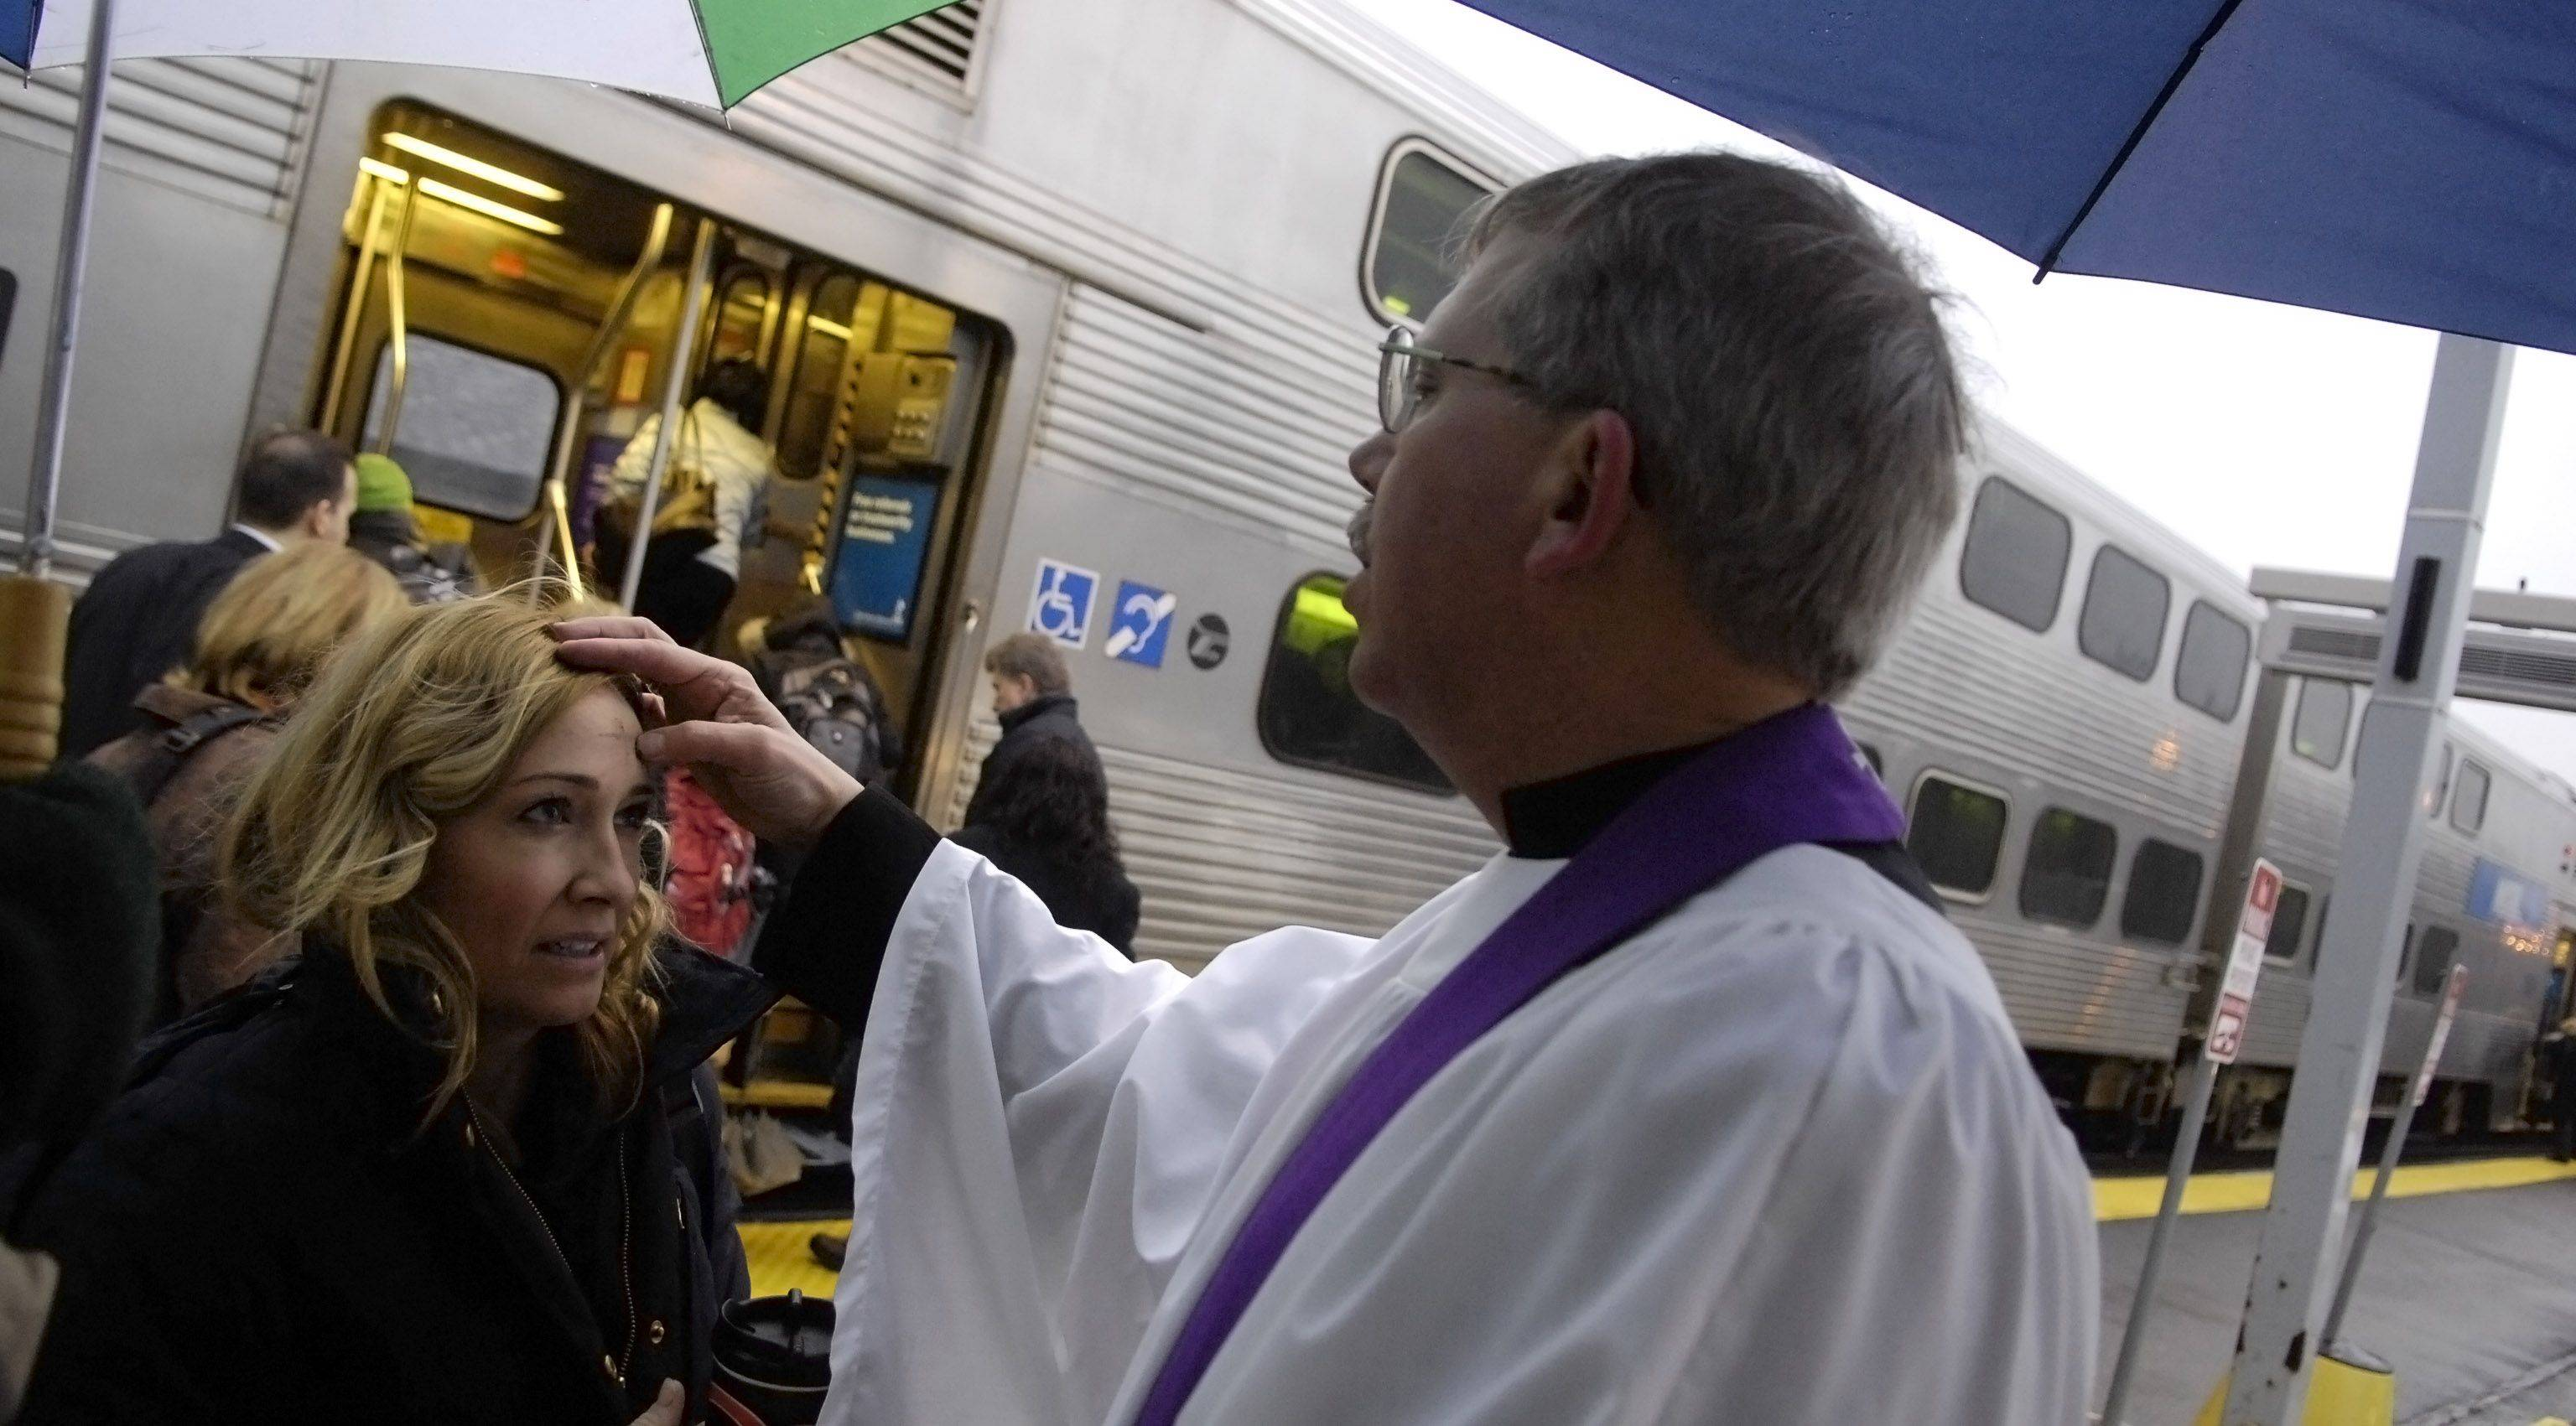 Rev. Bill Nesbit from St. Charles Episcopal Church administers ashes to commuter Joy Saris of Geneva at the Geneva Metra station on Ash Wednesday.